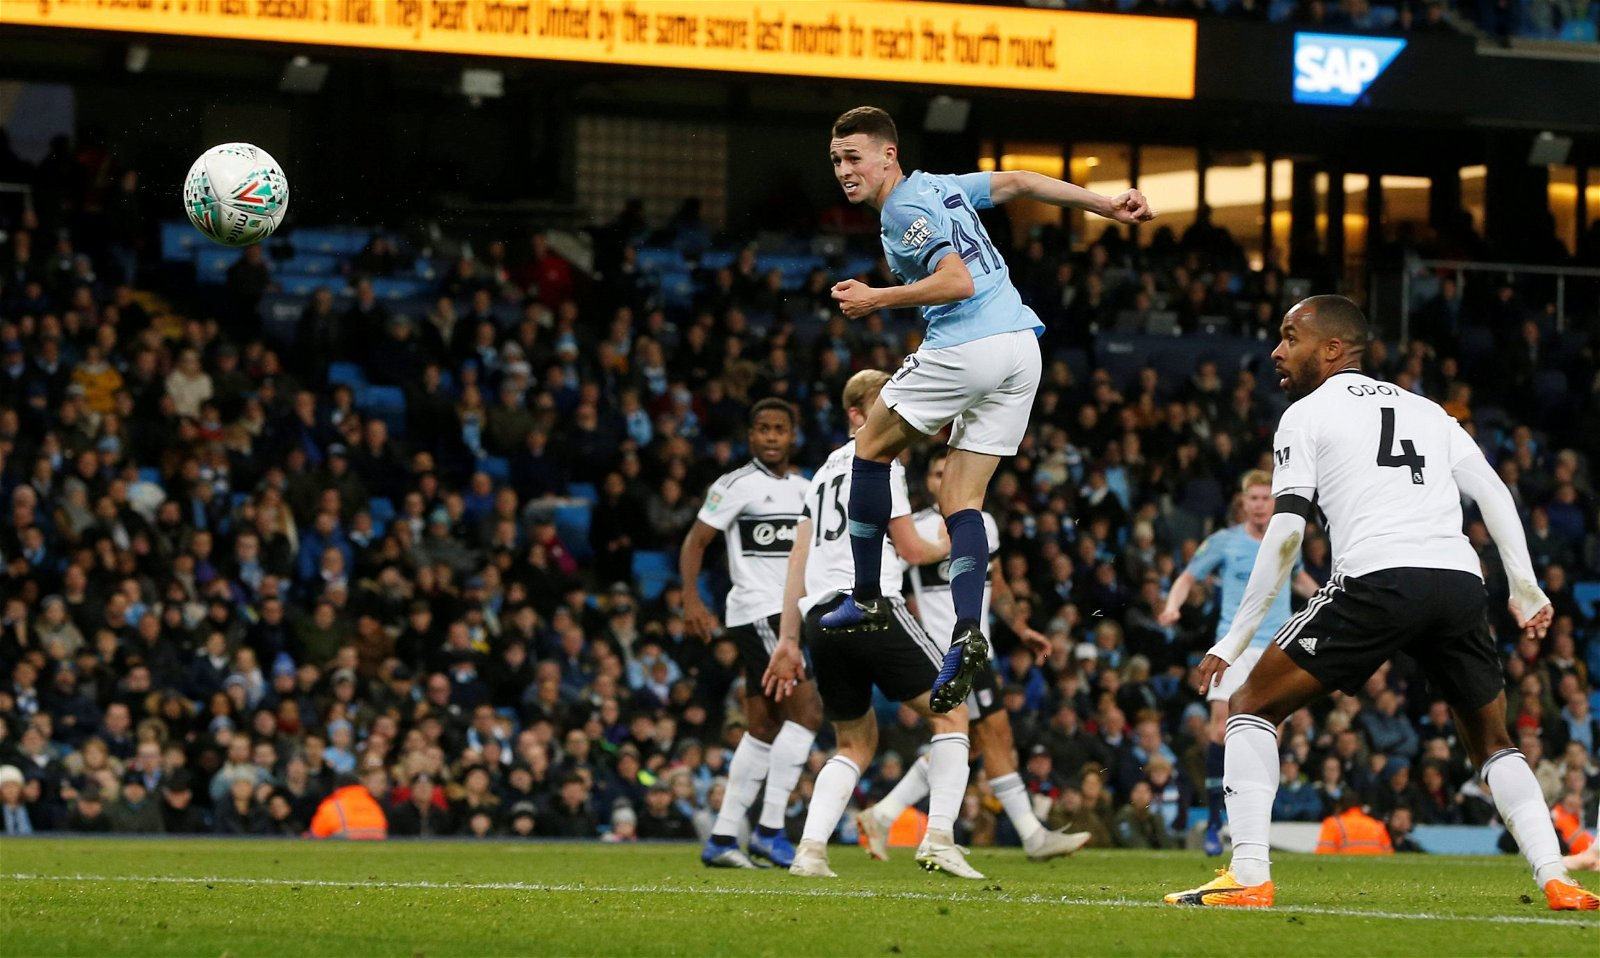 Manchester City's Phil Foden heads at goal vs Fulham in Carabao Cup